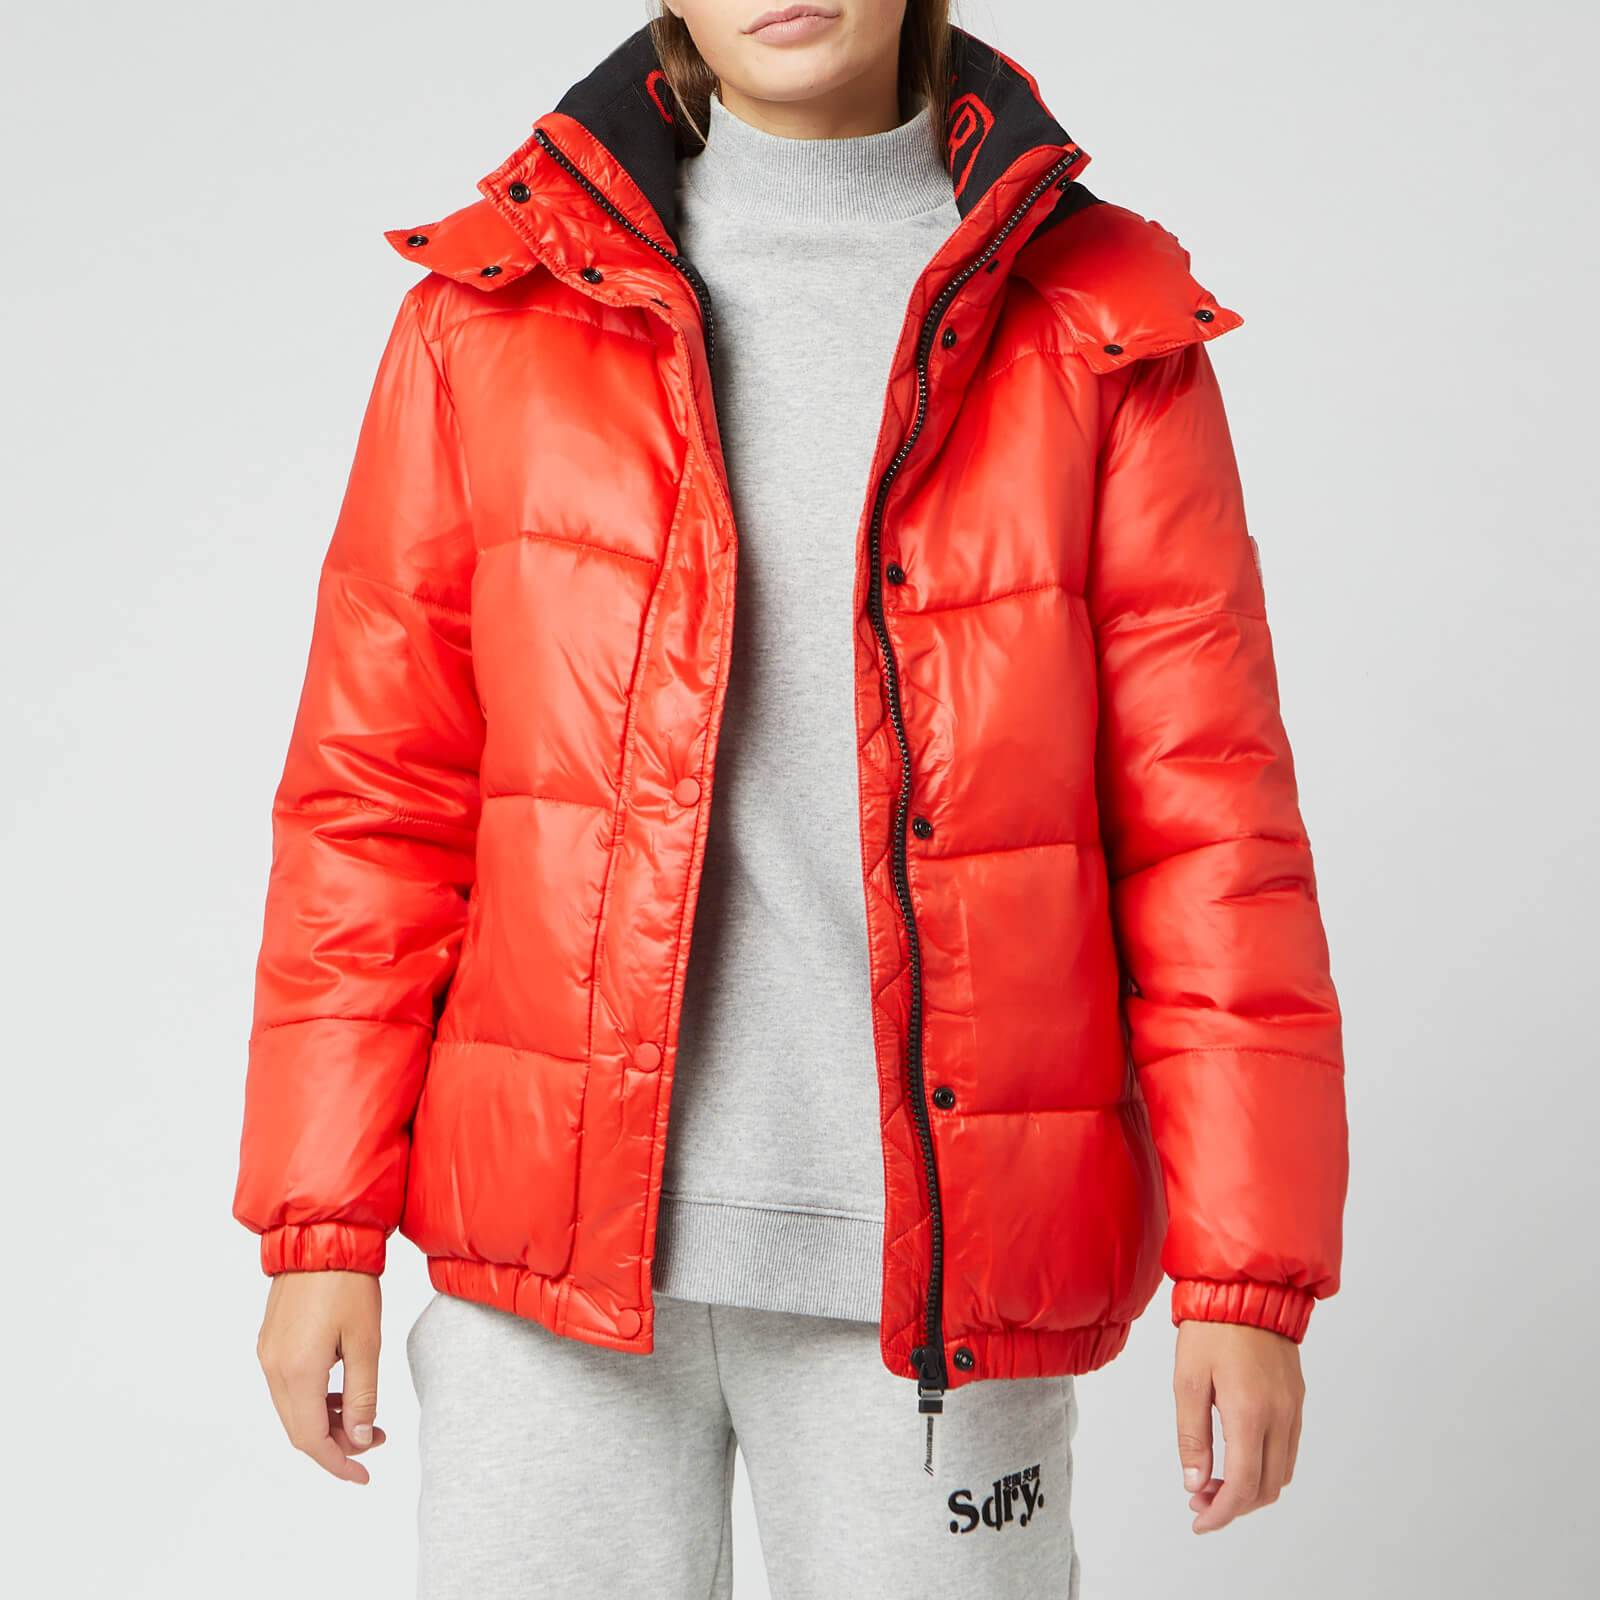 Superdry Women's Astrid Puffer Jacket - Apple Red - UK 10